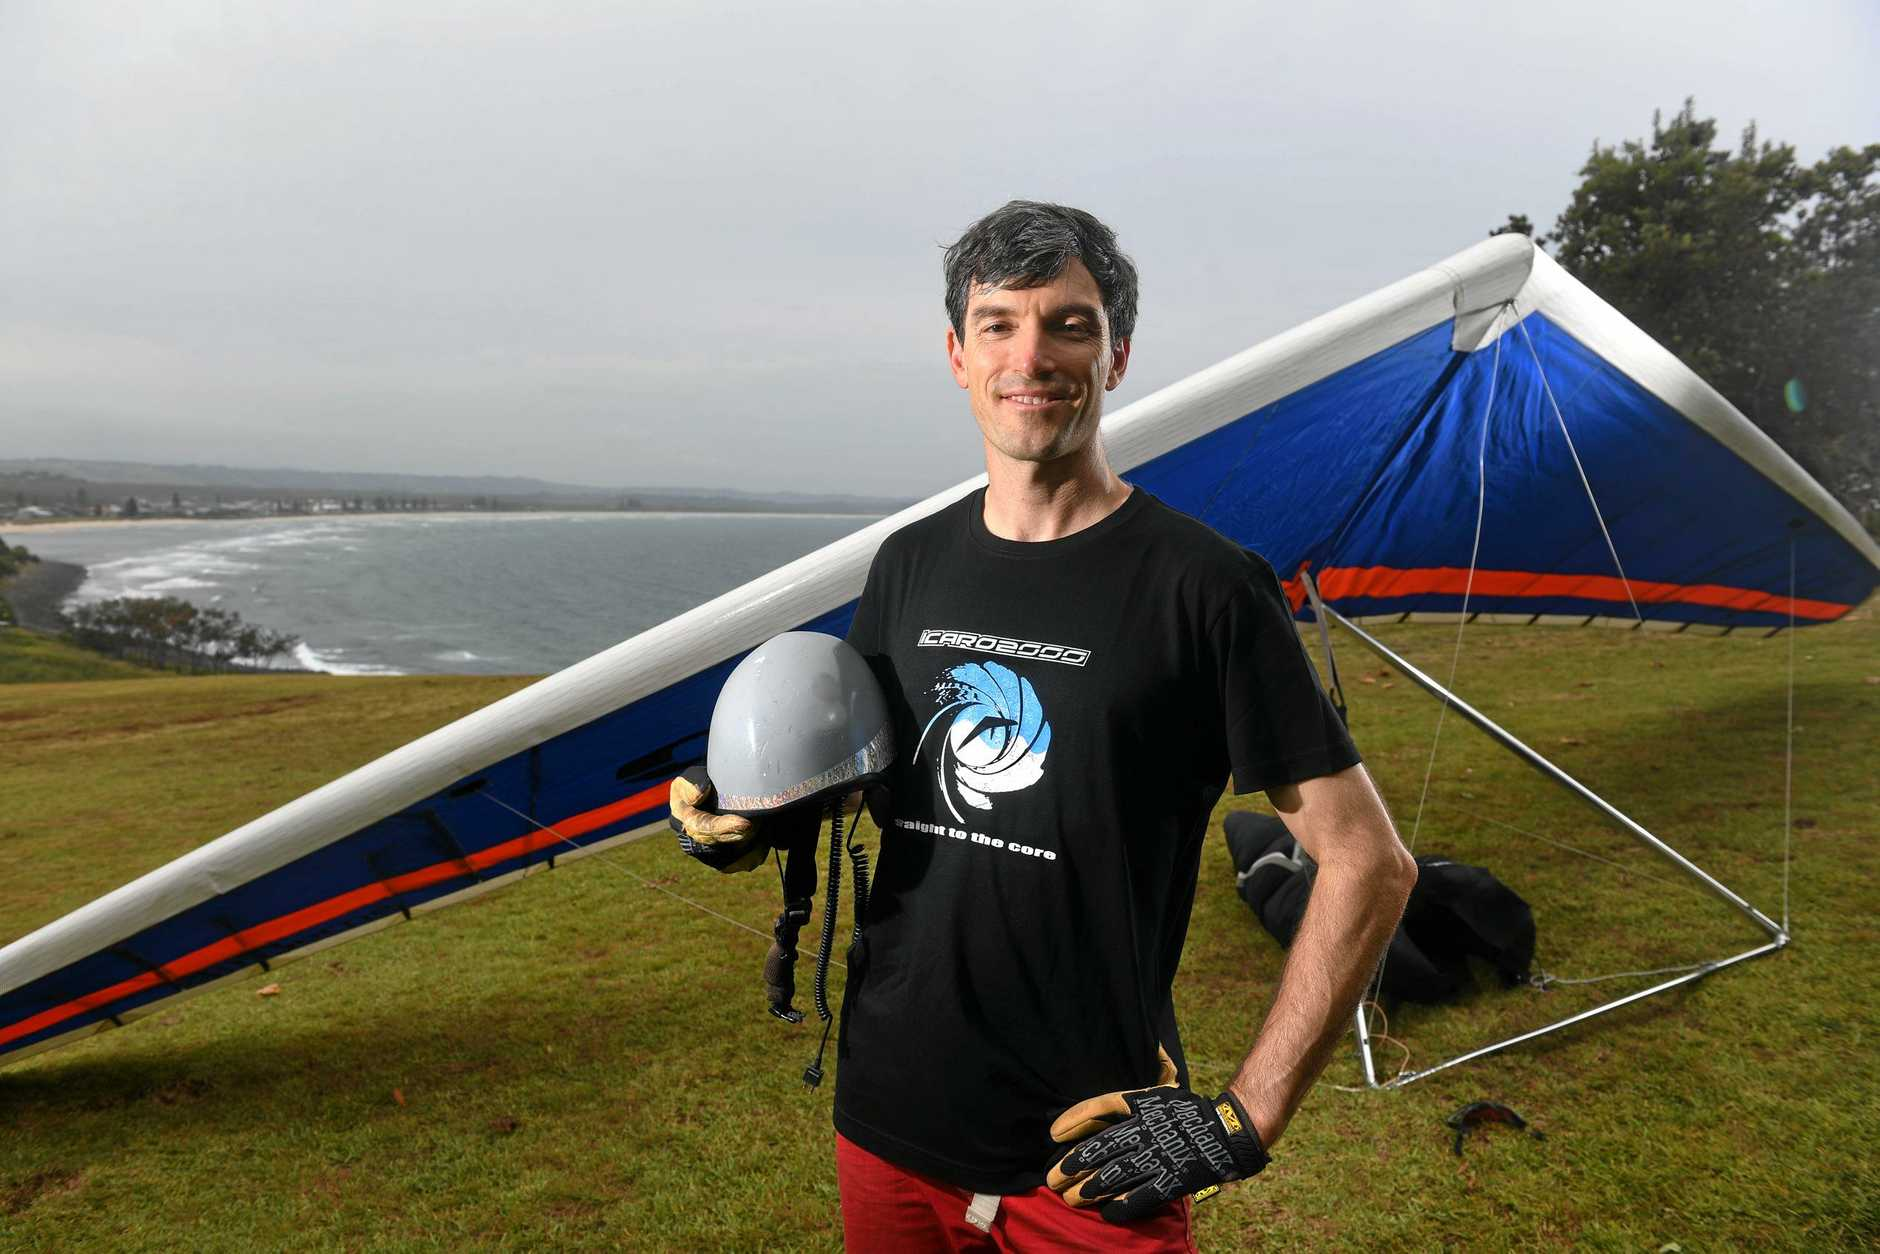 Scott Barett, of Lismore, hangglided 500kn to a declared location to break a national Australian record.